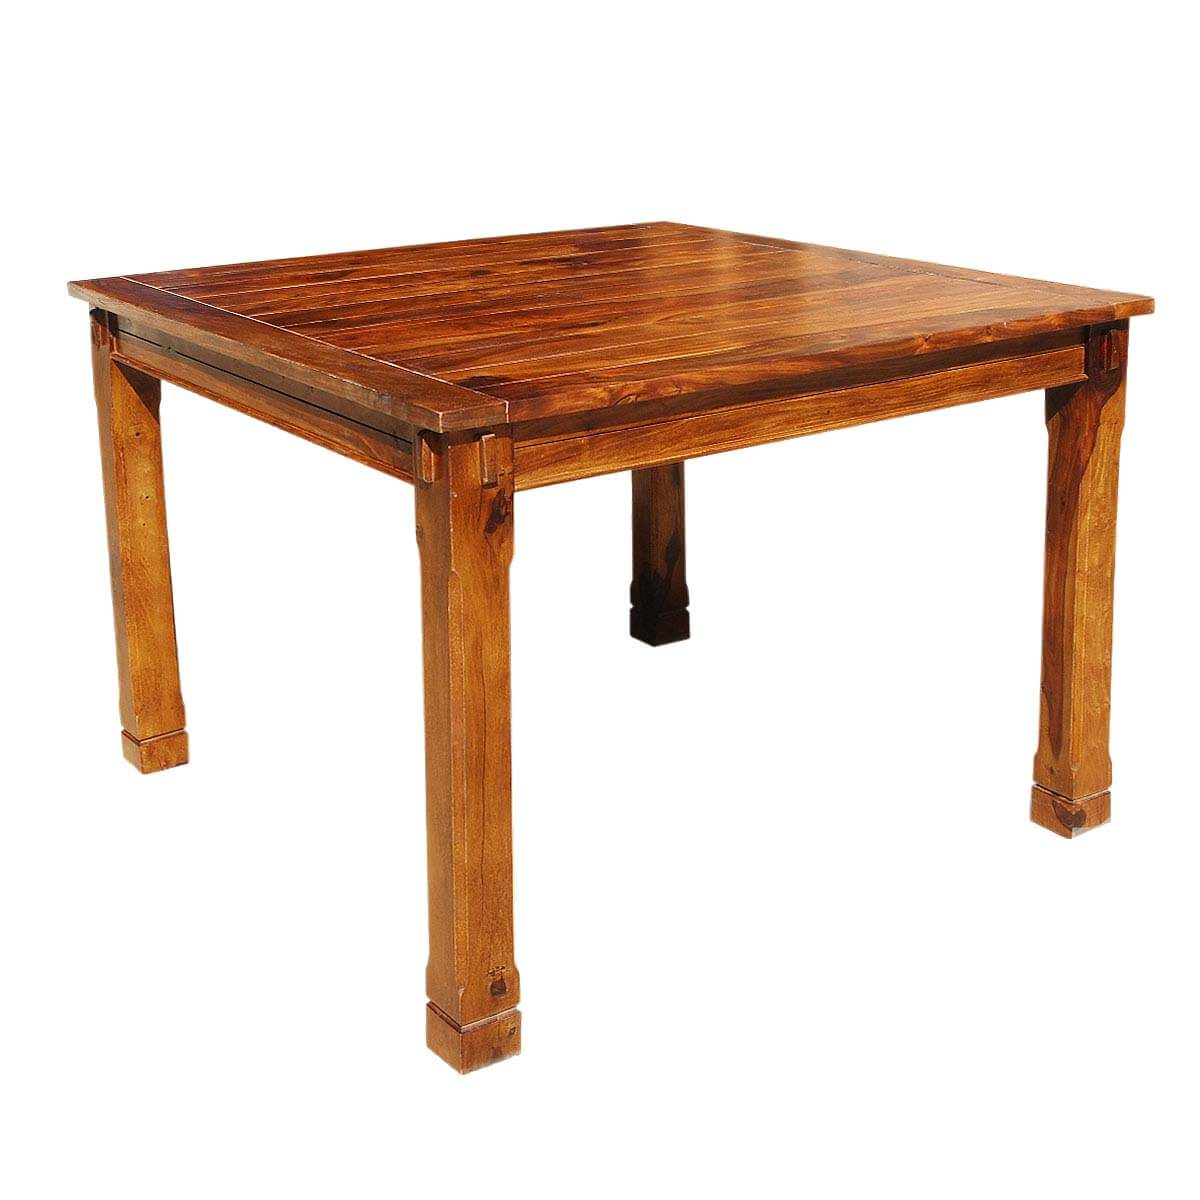 Rustic Solid Wood Square Counter Height Dining Table